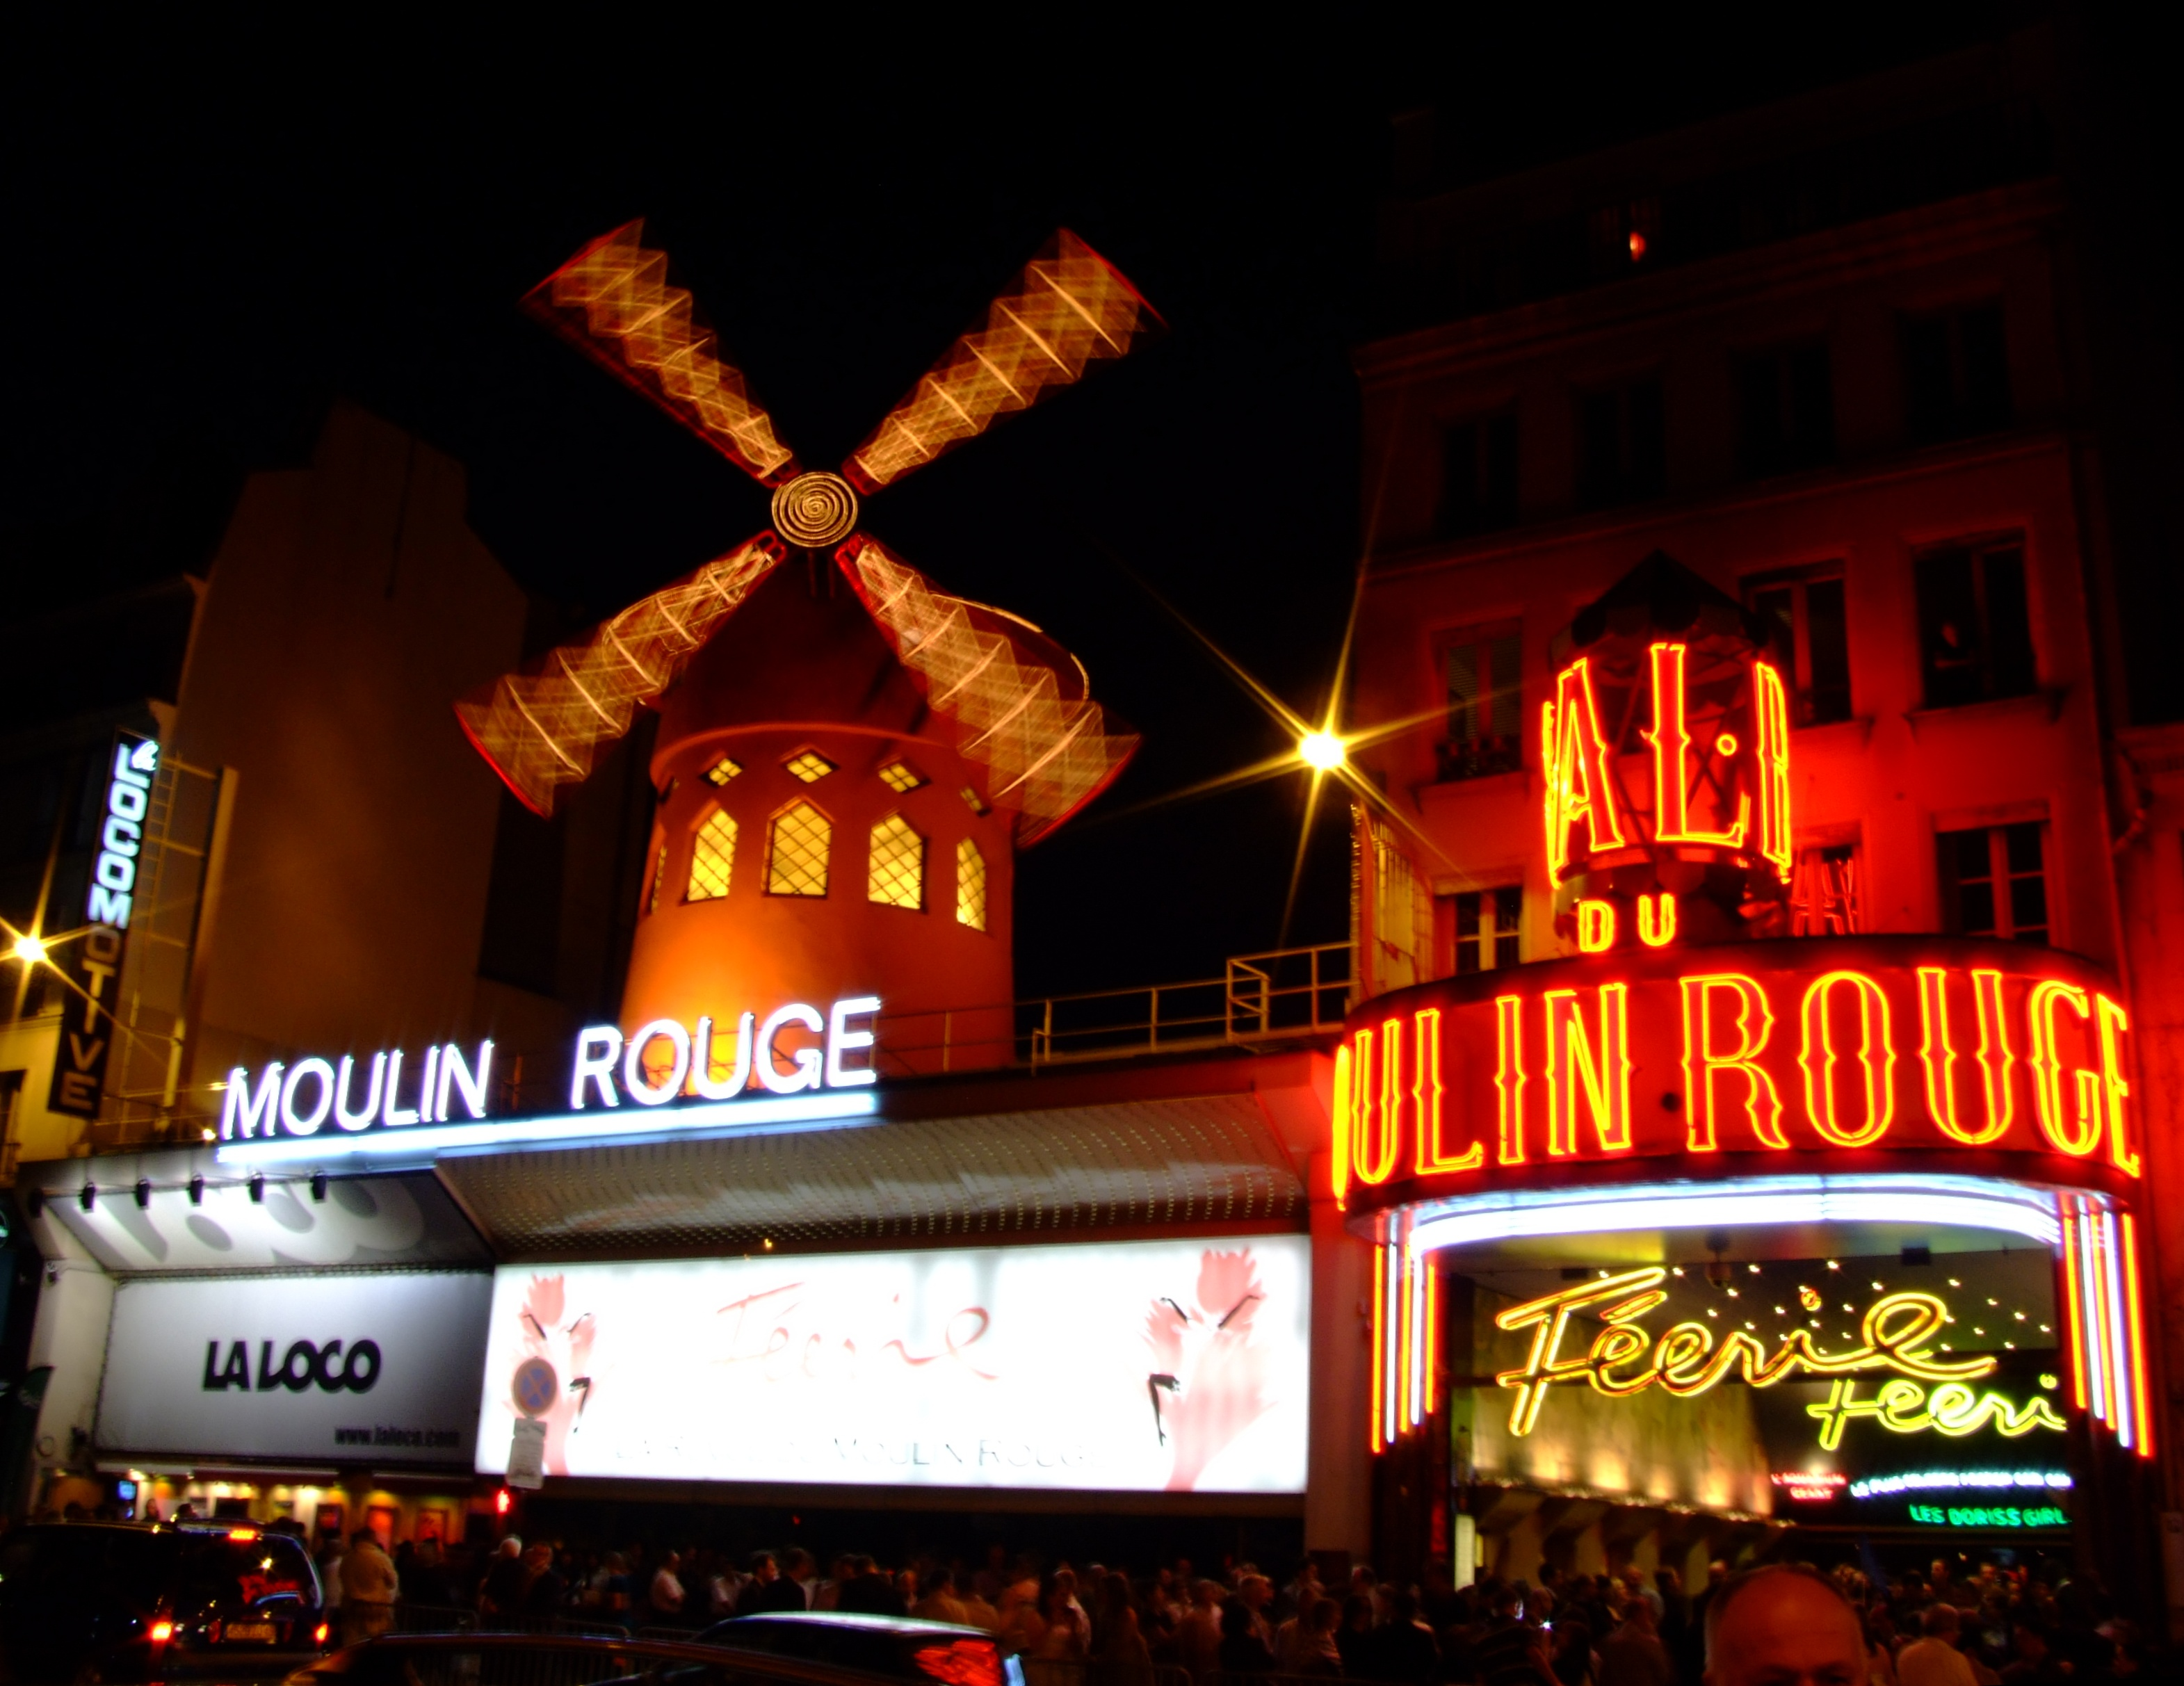 History of moulin rouge